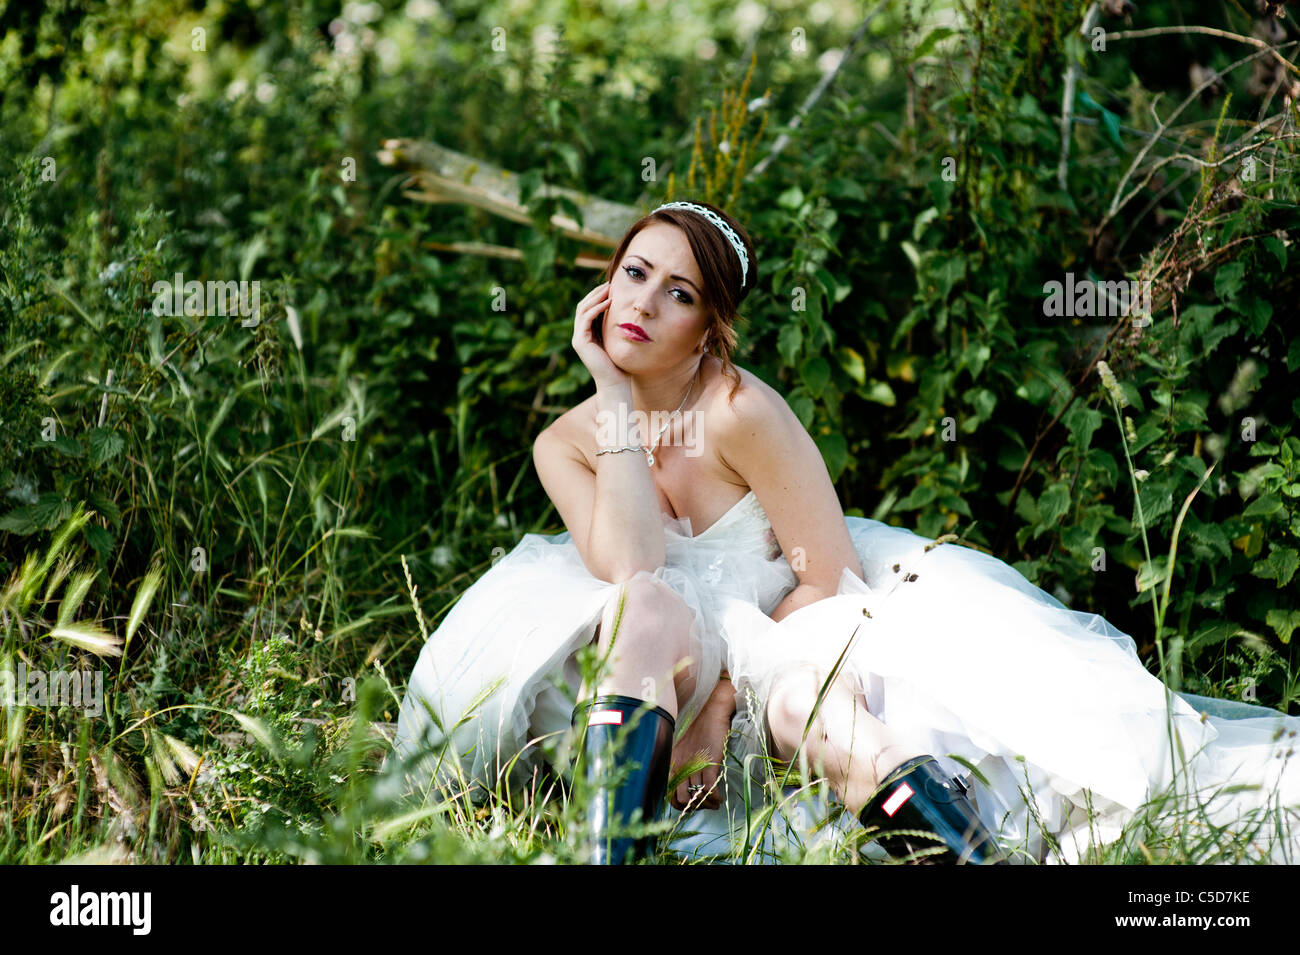 Bride Boots Stockfotos & Bride Boots Bilder - Alamy